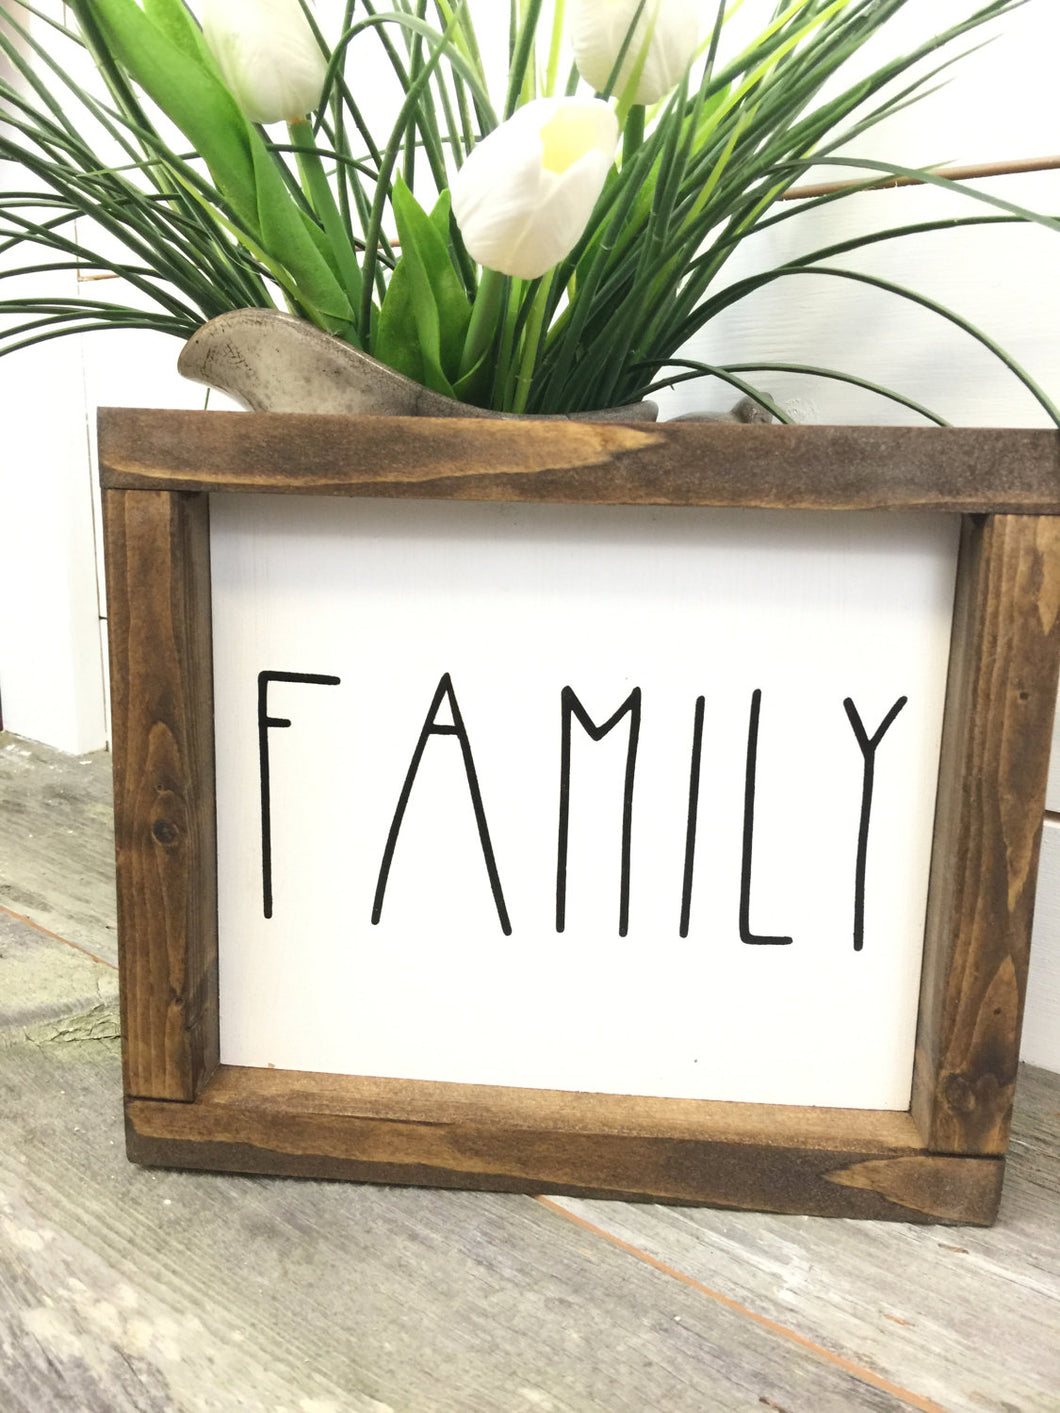 Family Wood Sign - Rustic Wood Sign - Rustic Home Decor - Farmhouse Sign - Cottage Sign - White Sign - Rustic Wood Wall Hanging